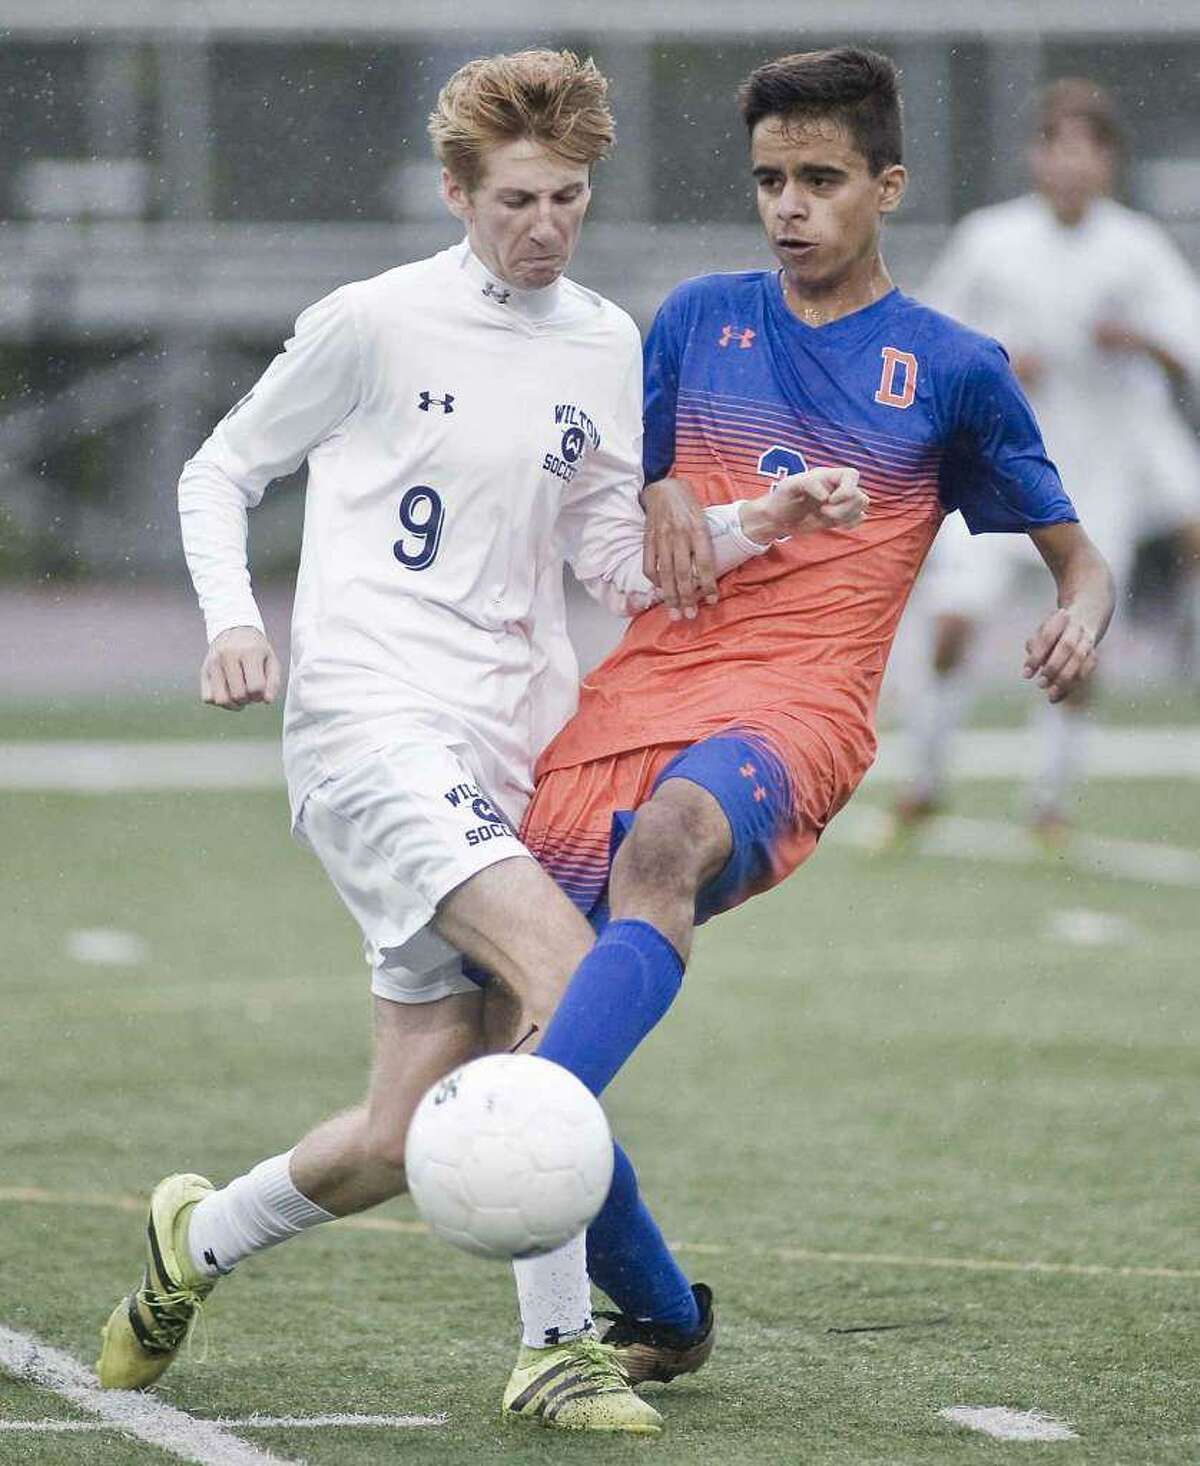 Liam McLaughlin (left) is one of the top returnees for the Wilton boys soccer team.